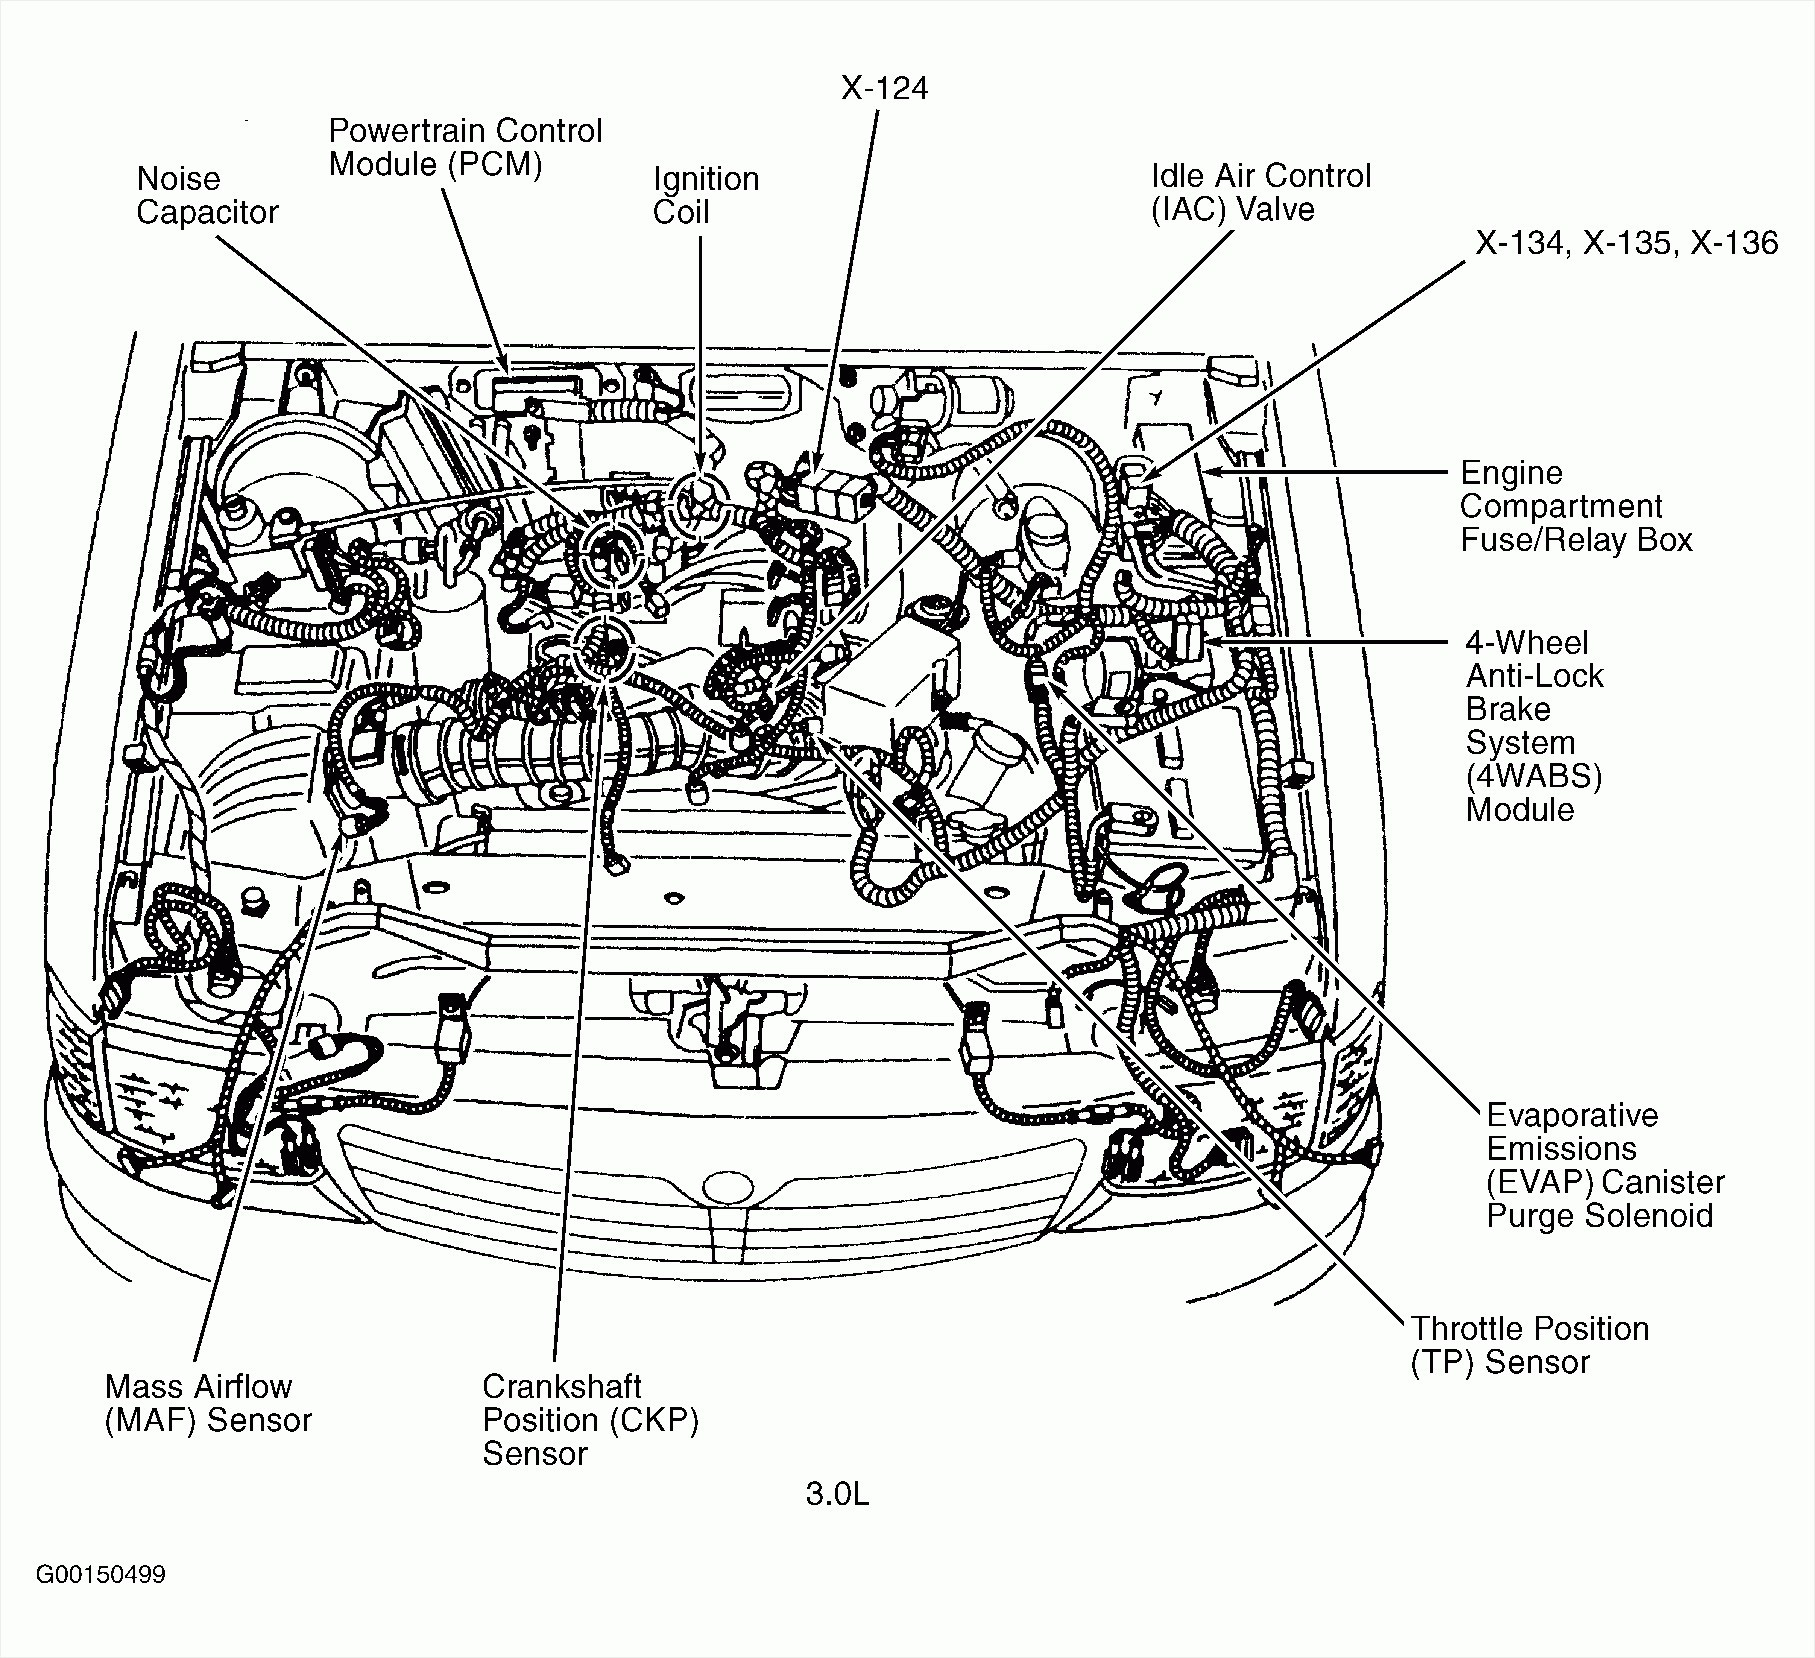 hight resolution of ford ranger v6 fuel system diagram trusted wiring diagram rh dafpods co